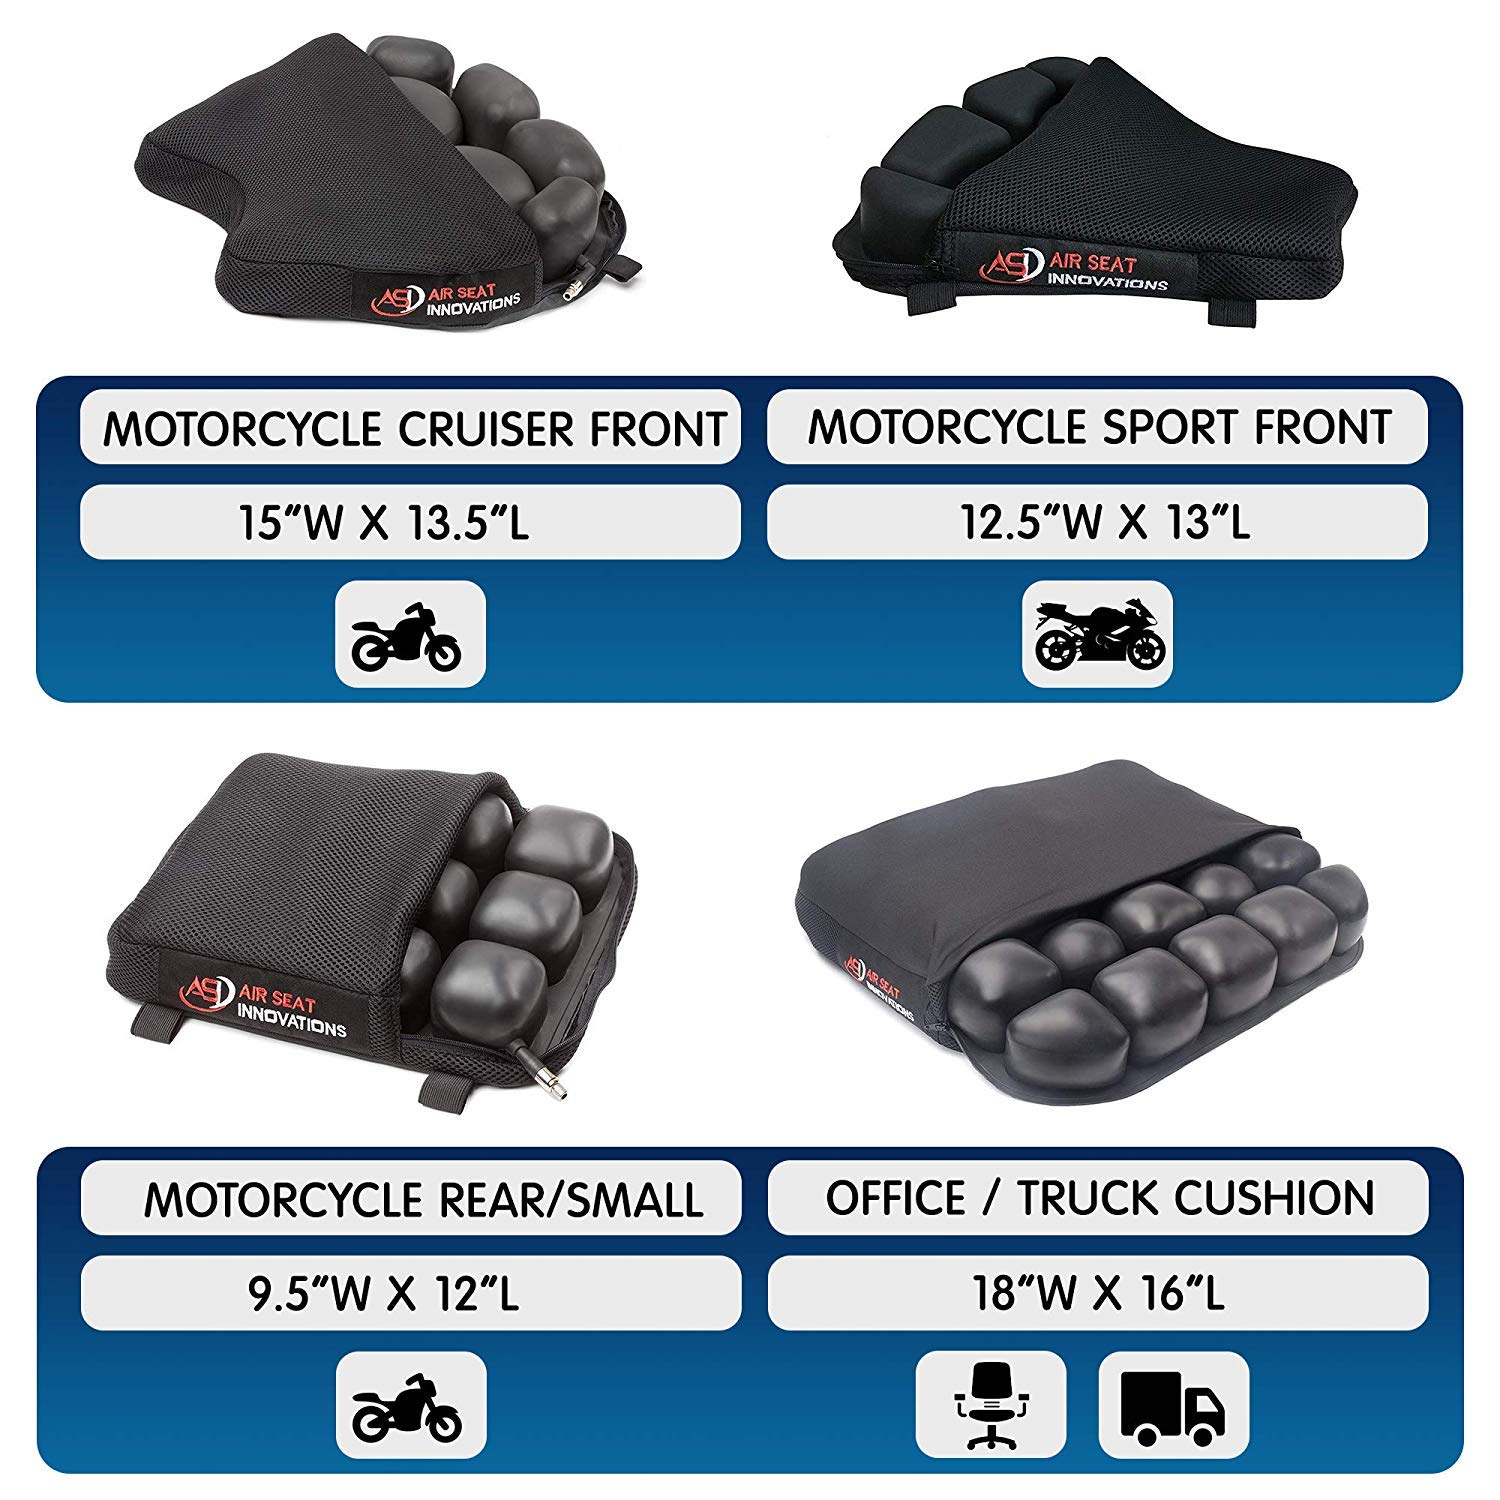 Truck Driver Seat Cushion For Lower Back Pain Relief Sciatica Coccyx Air Comfort Pad Office / Auto / Wheelchair / Trucker / Tractor / Construction 18''x16'' by Air Seat Innovations (Image #1)